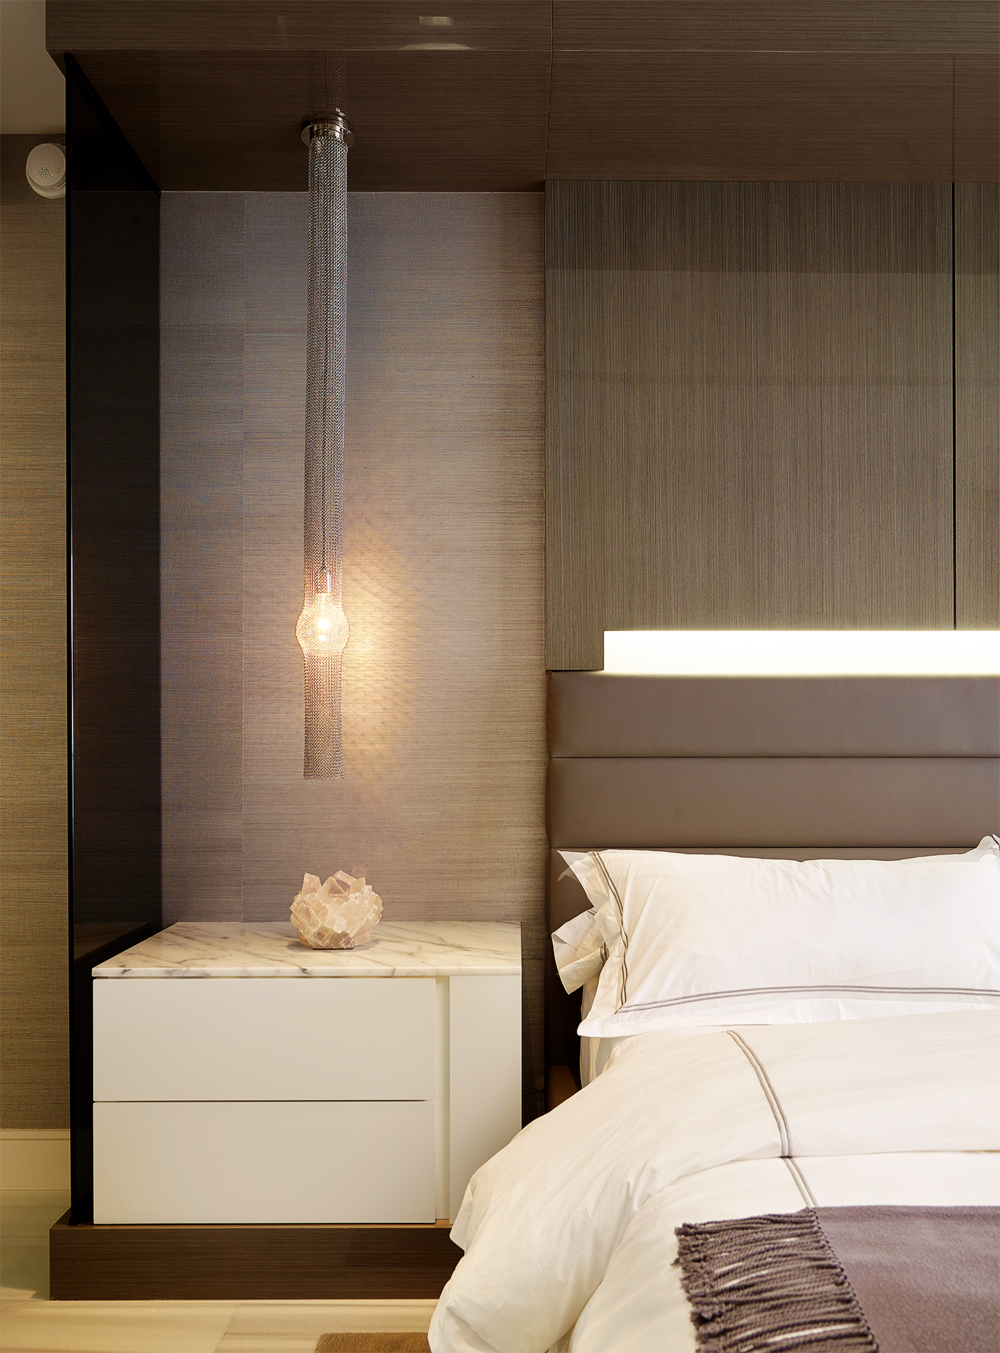 StRegis-1103s_Bed-detail-1.png